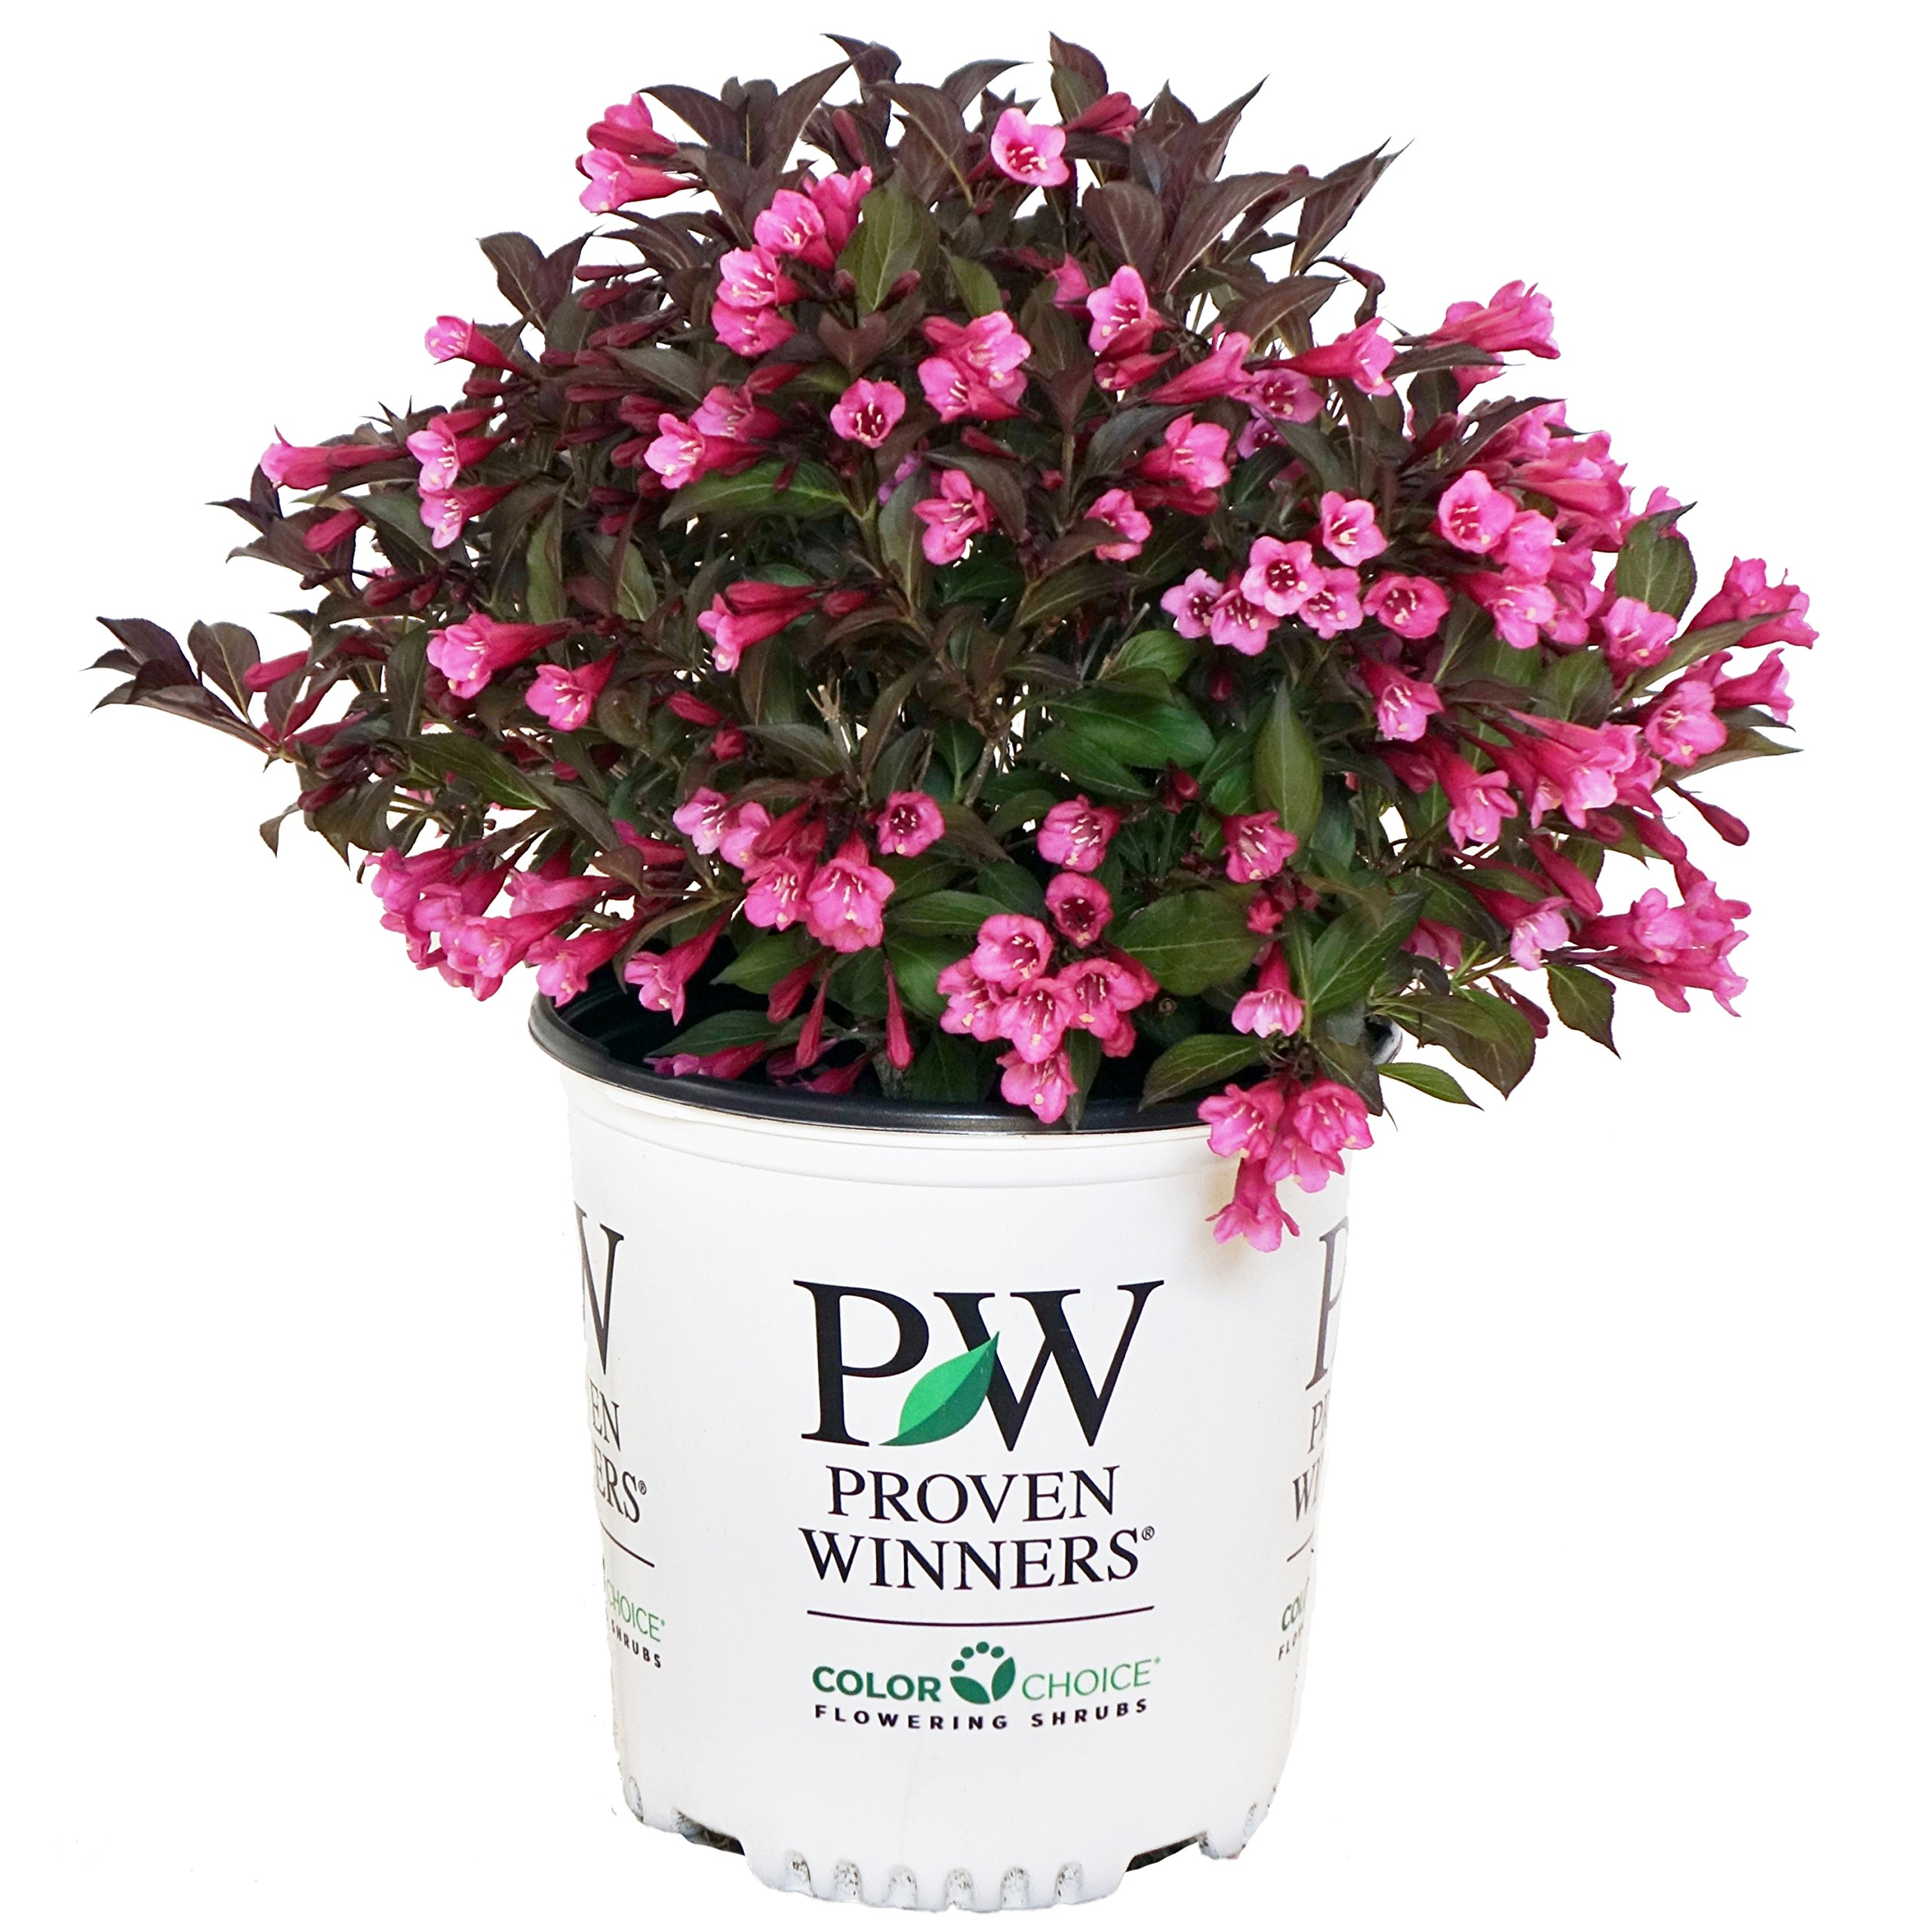 Proven Winners - Weigela Florida Wine & Roses (Weigela) Shrub, Pink Flowers, 2 - Size Container